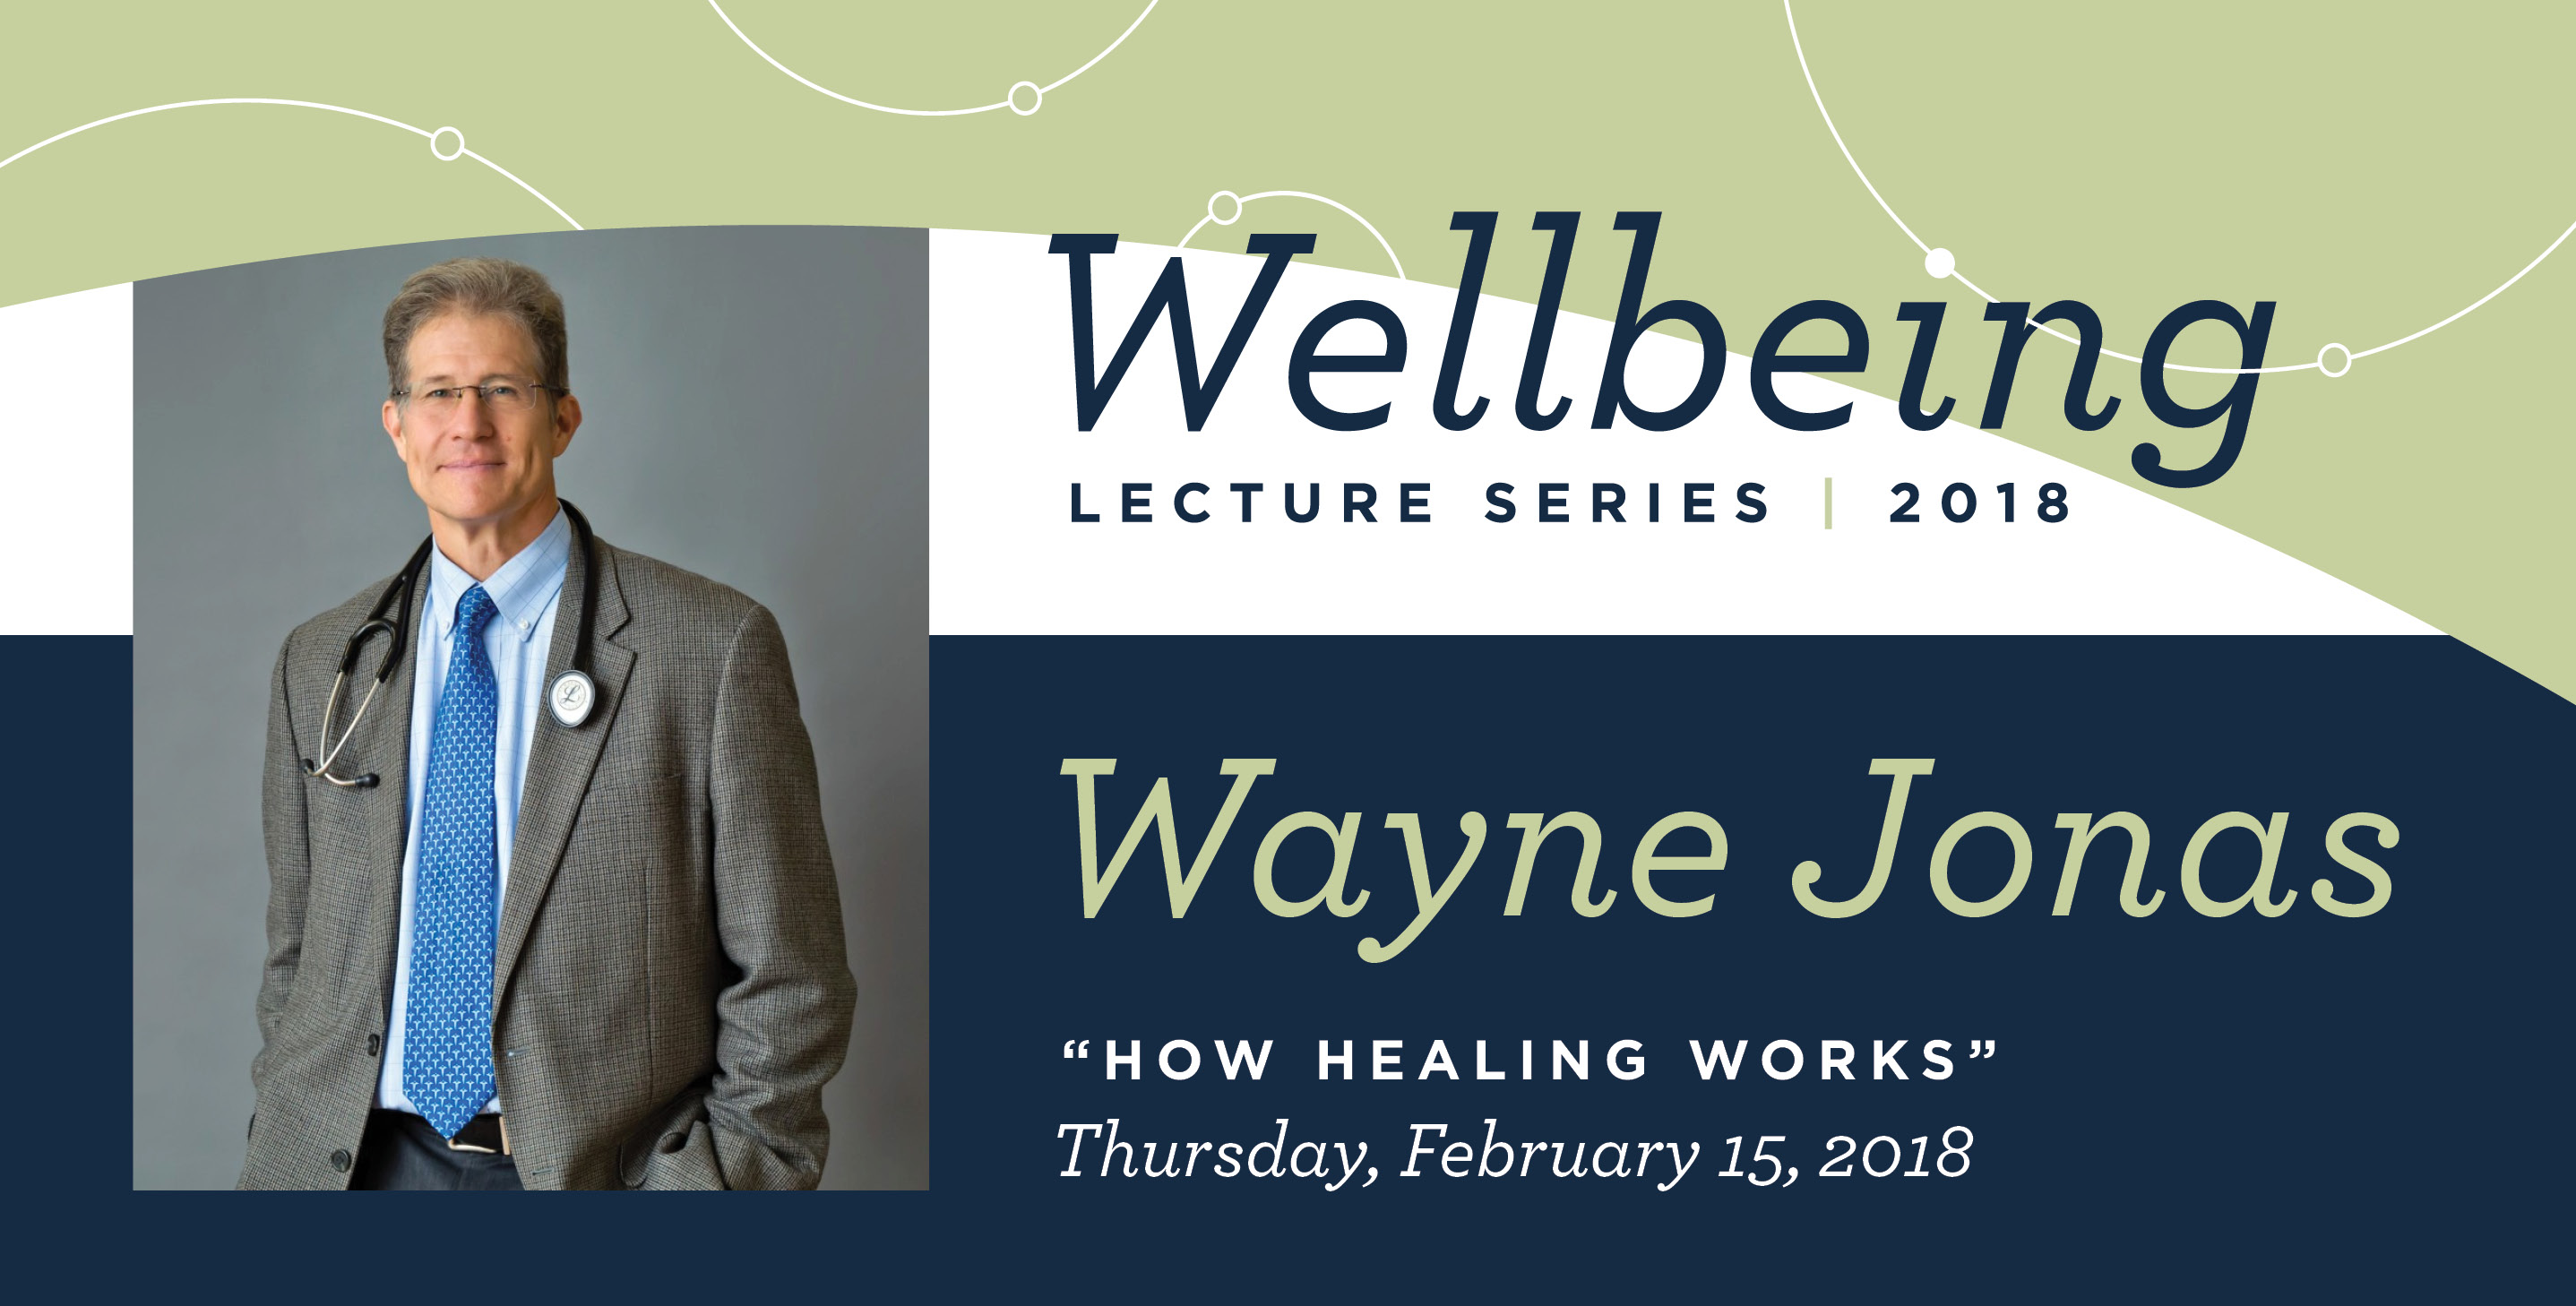 Image of Dr. Wayne Jonas and Wellbeing Lecture visual header